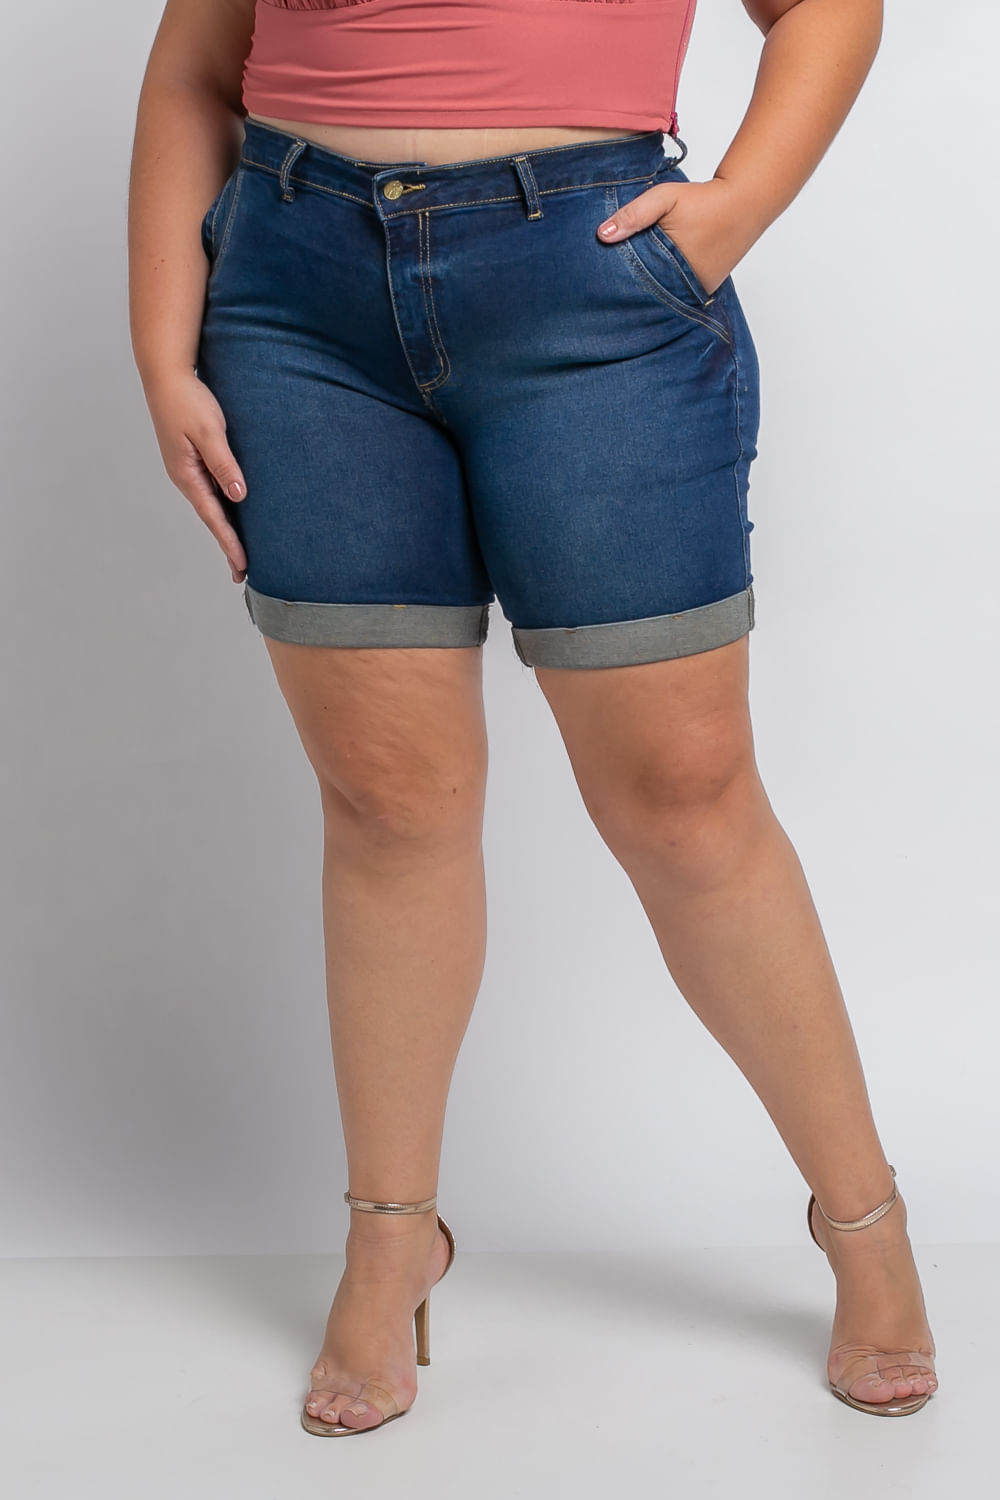 SHY35623_Shorts_Liso_Plus_Size_Jeans_AZUL_3